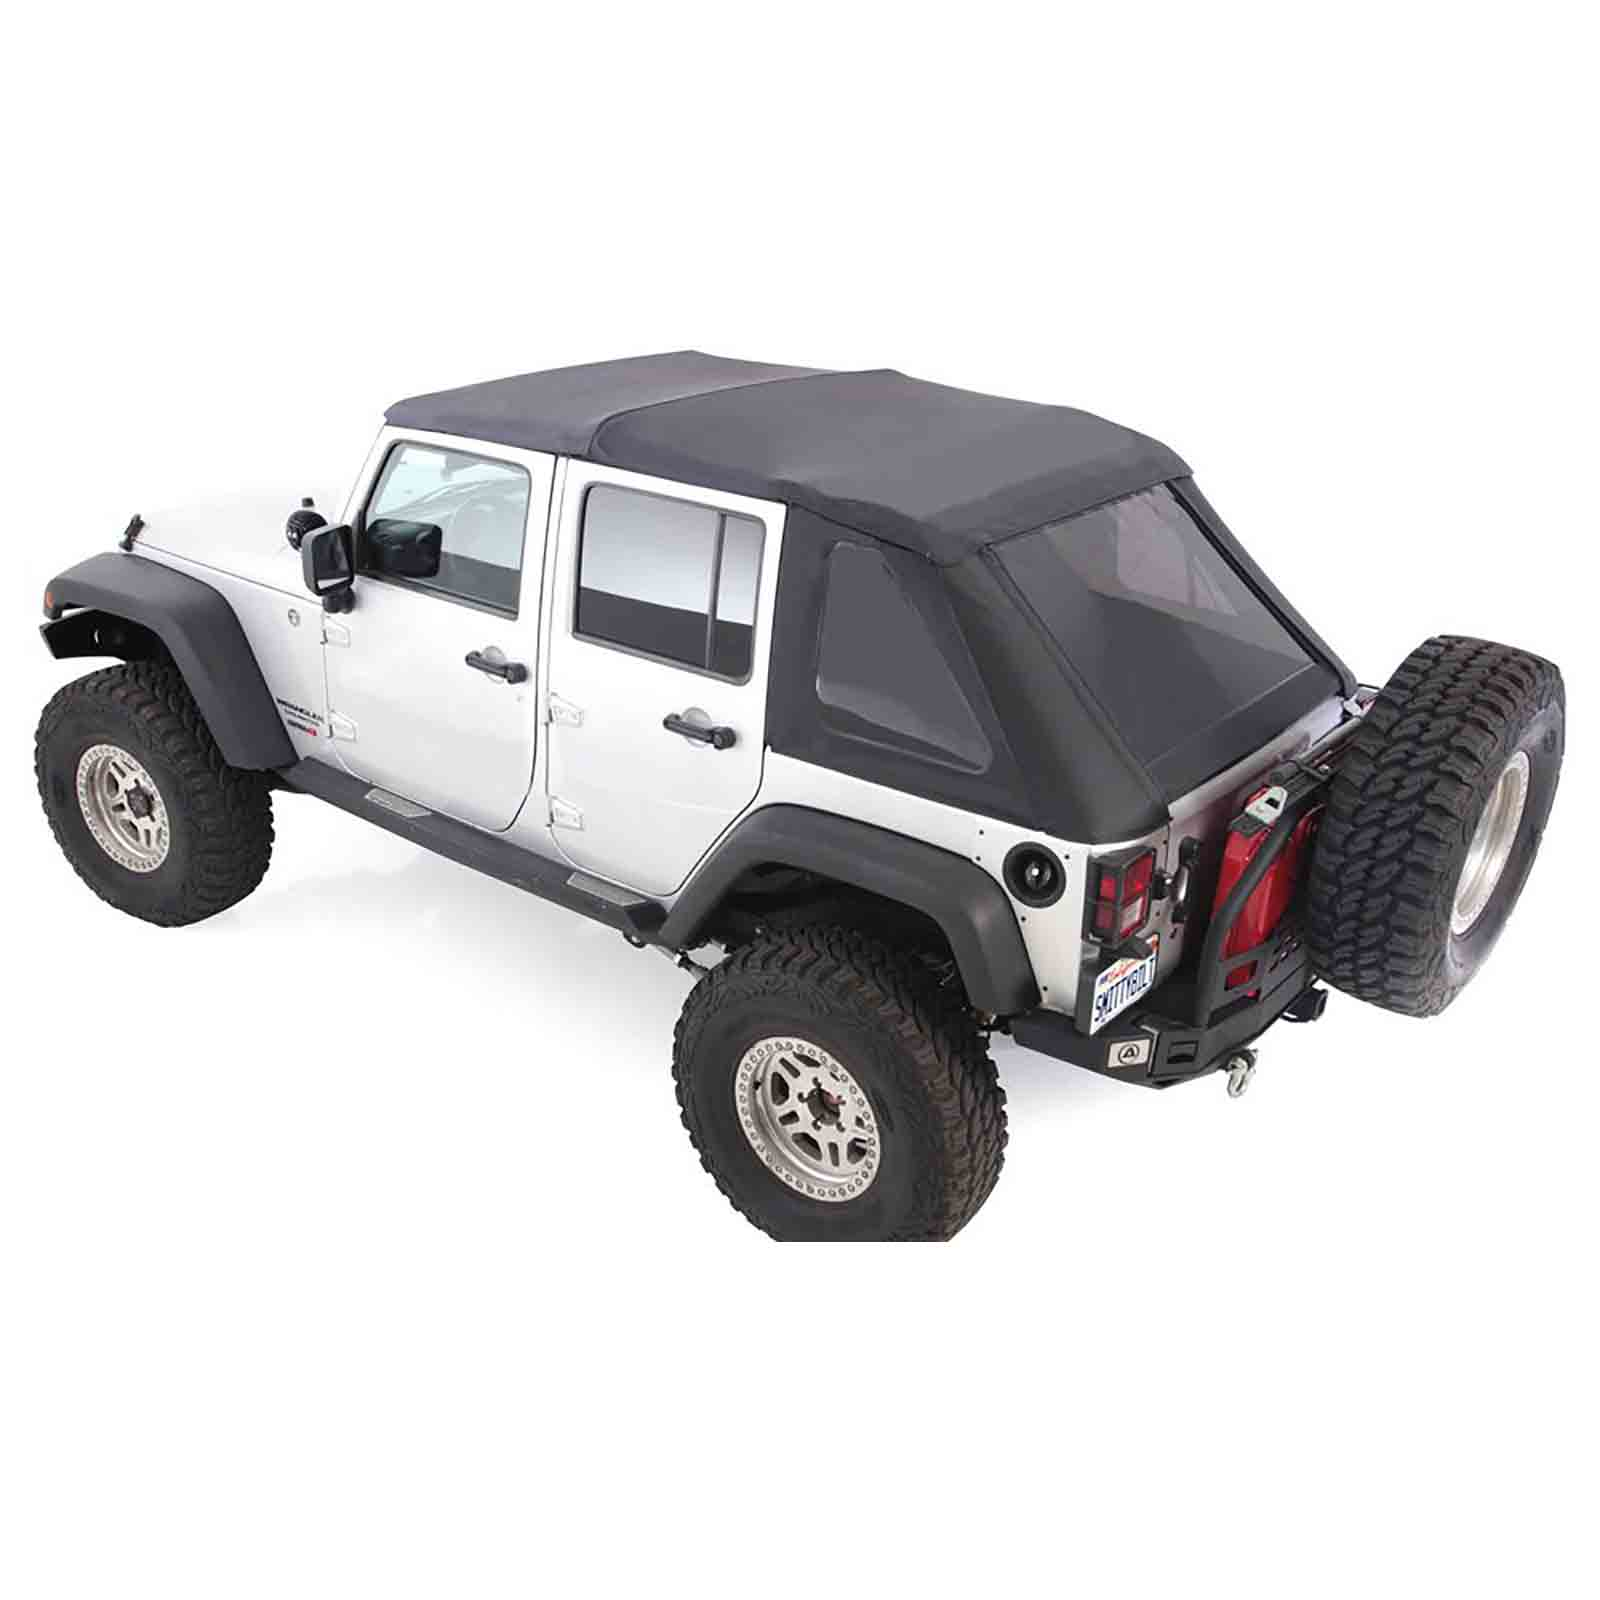 Bowless softtop soft top capottina wrangler jk 07 17 2p con vetri scuri ricambi jeep